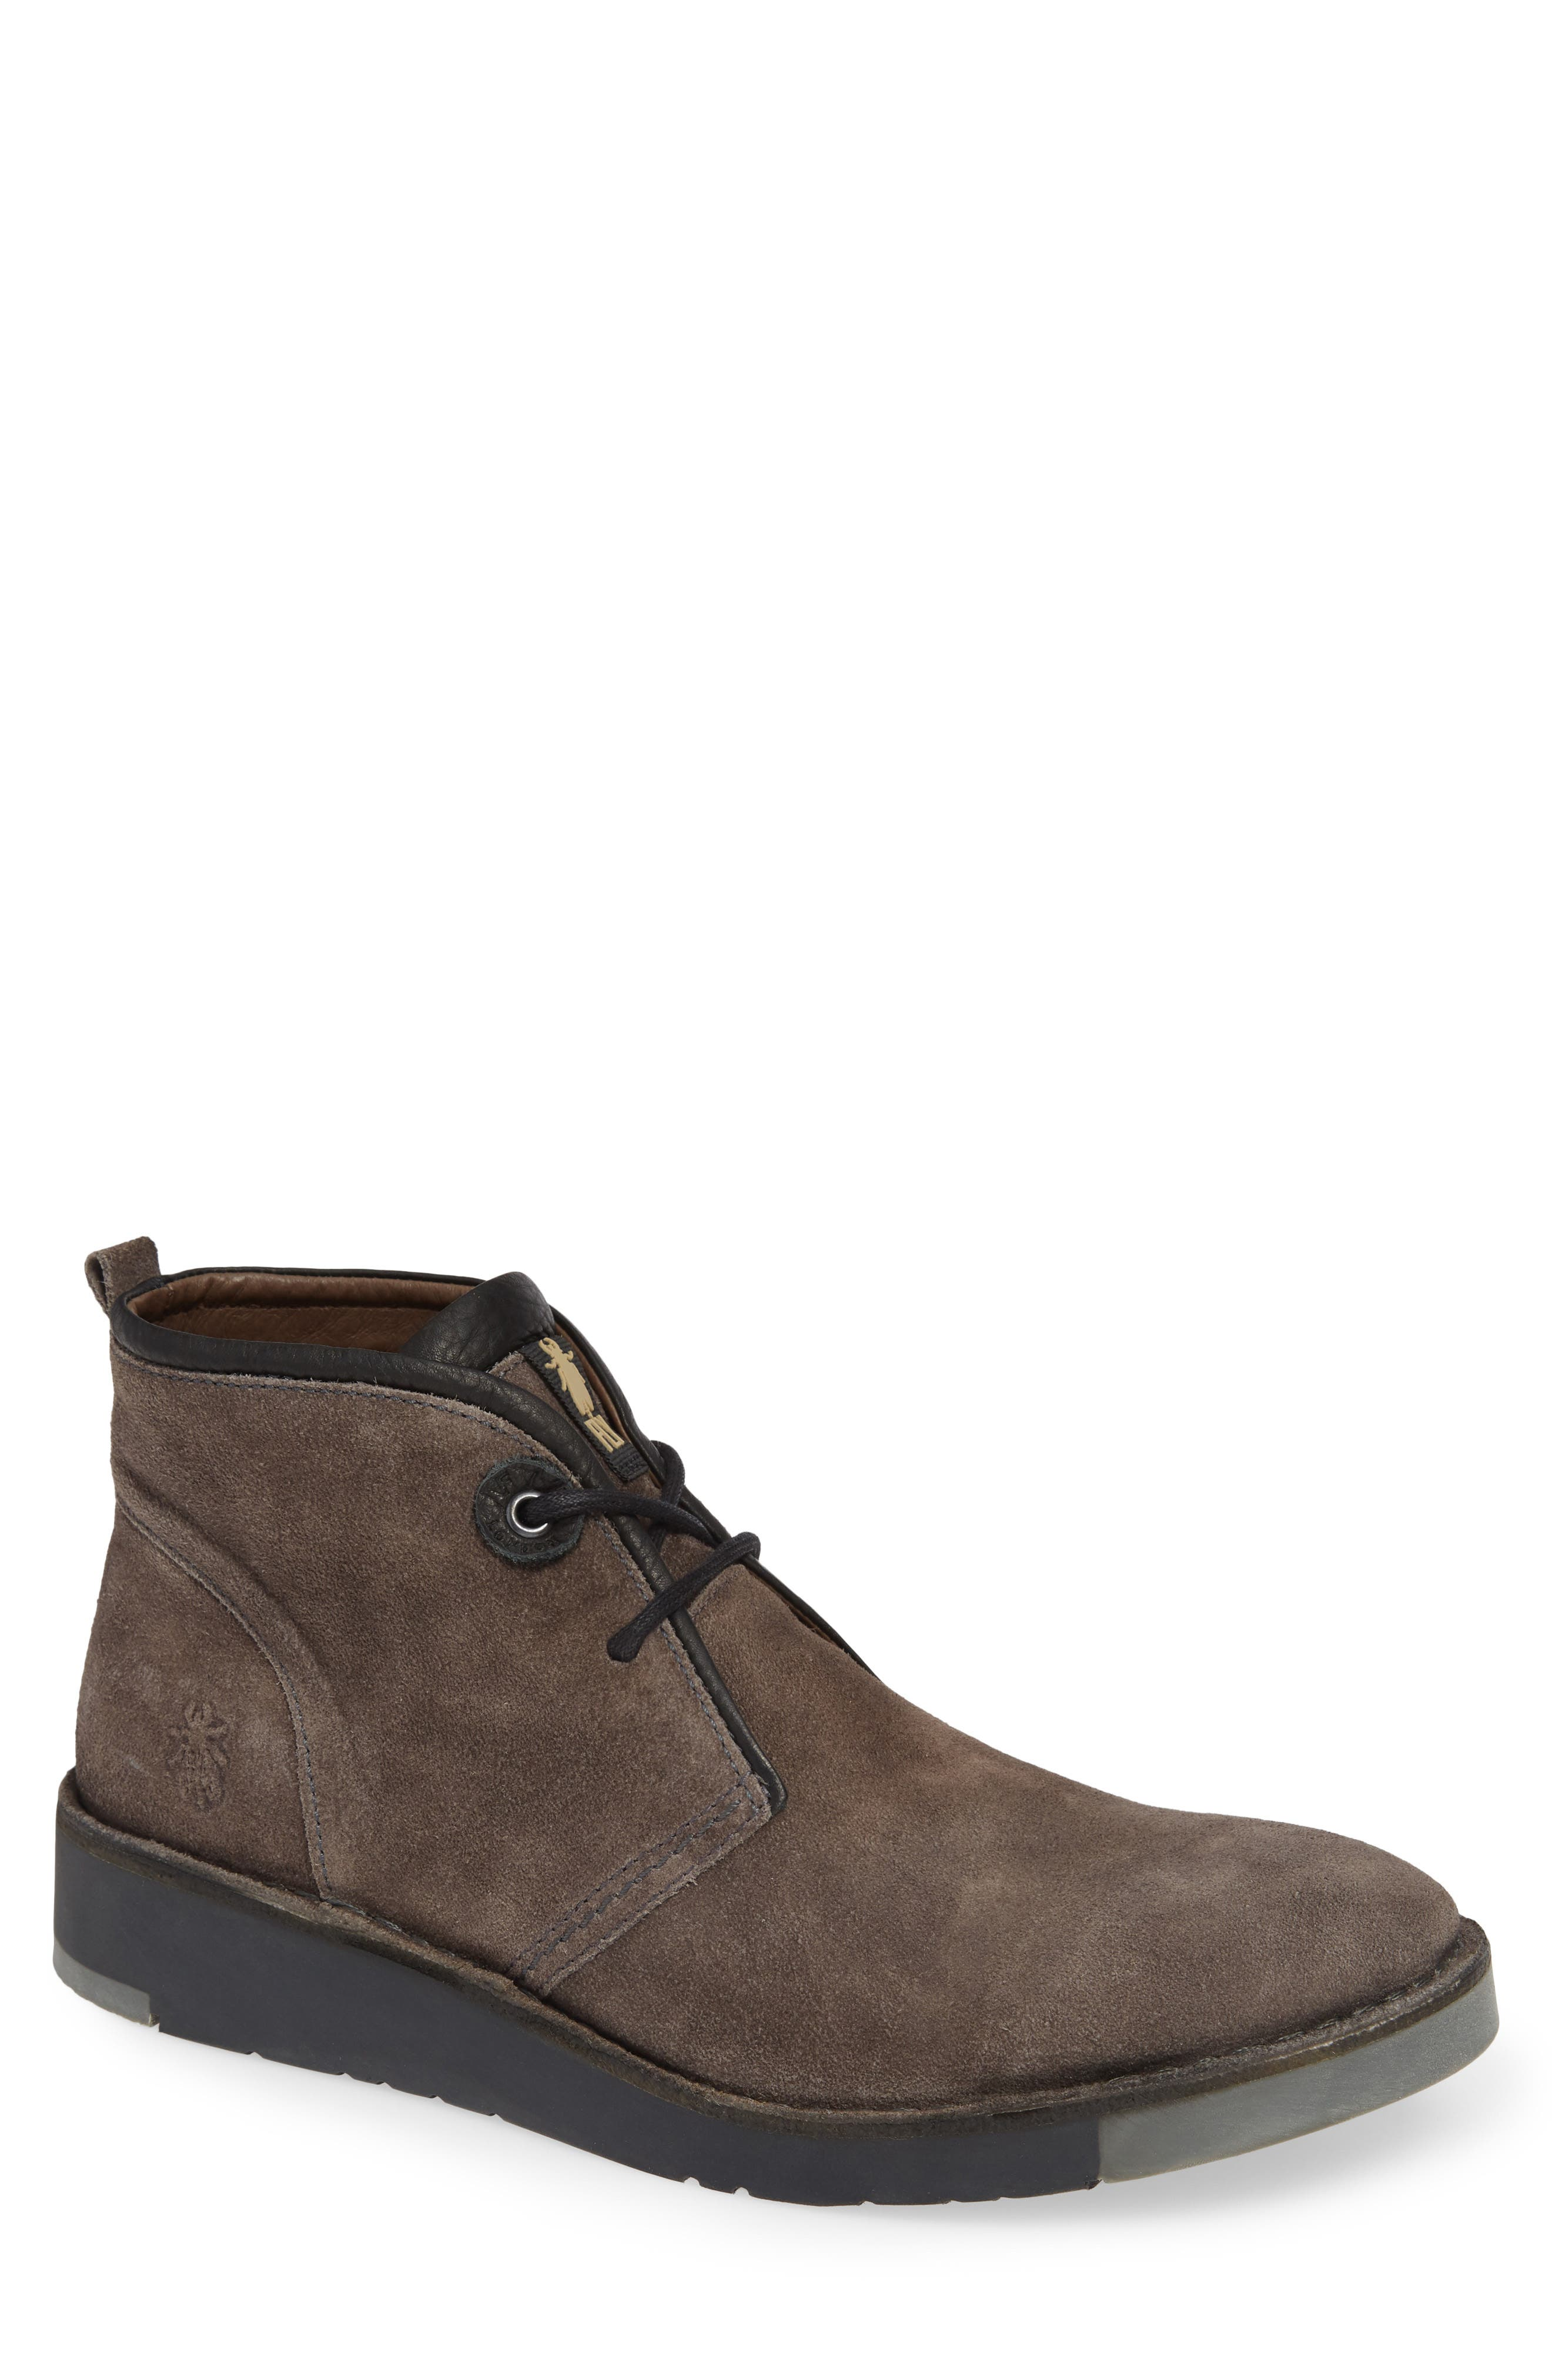 Sion Water Resistant Chukka Boot,                             Main thumbnail 1, color,                             GREY OIL SUEDE